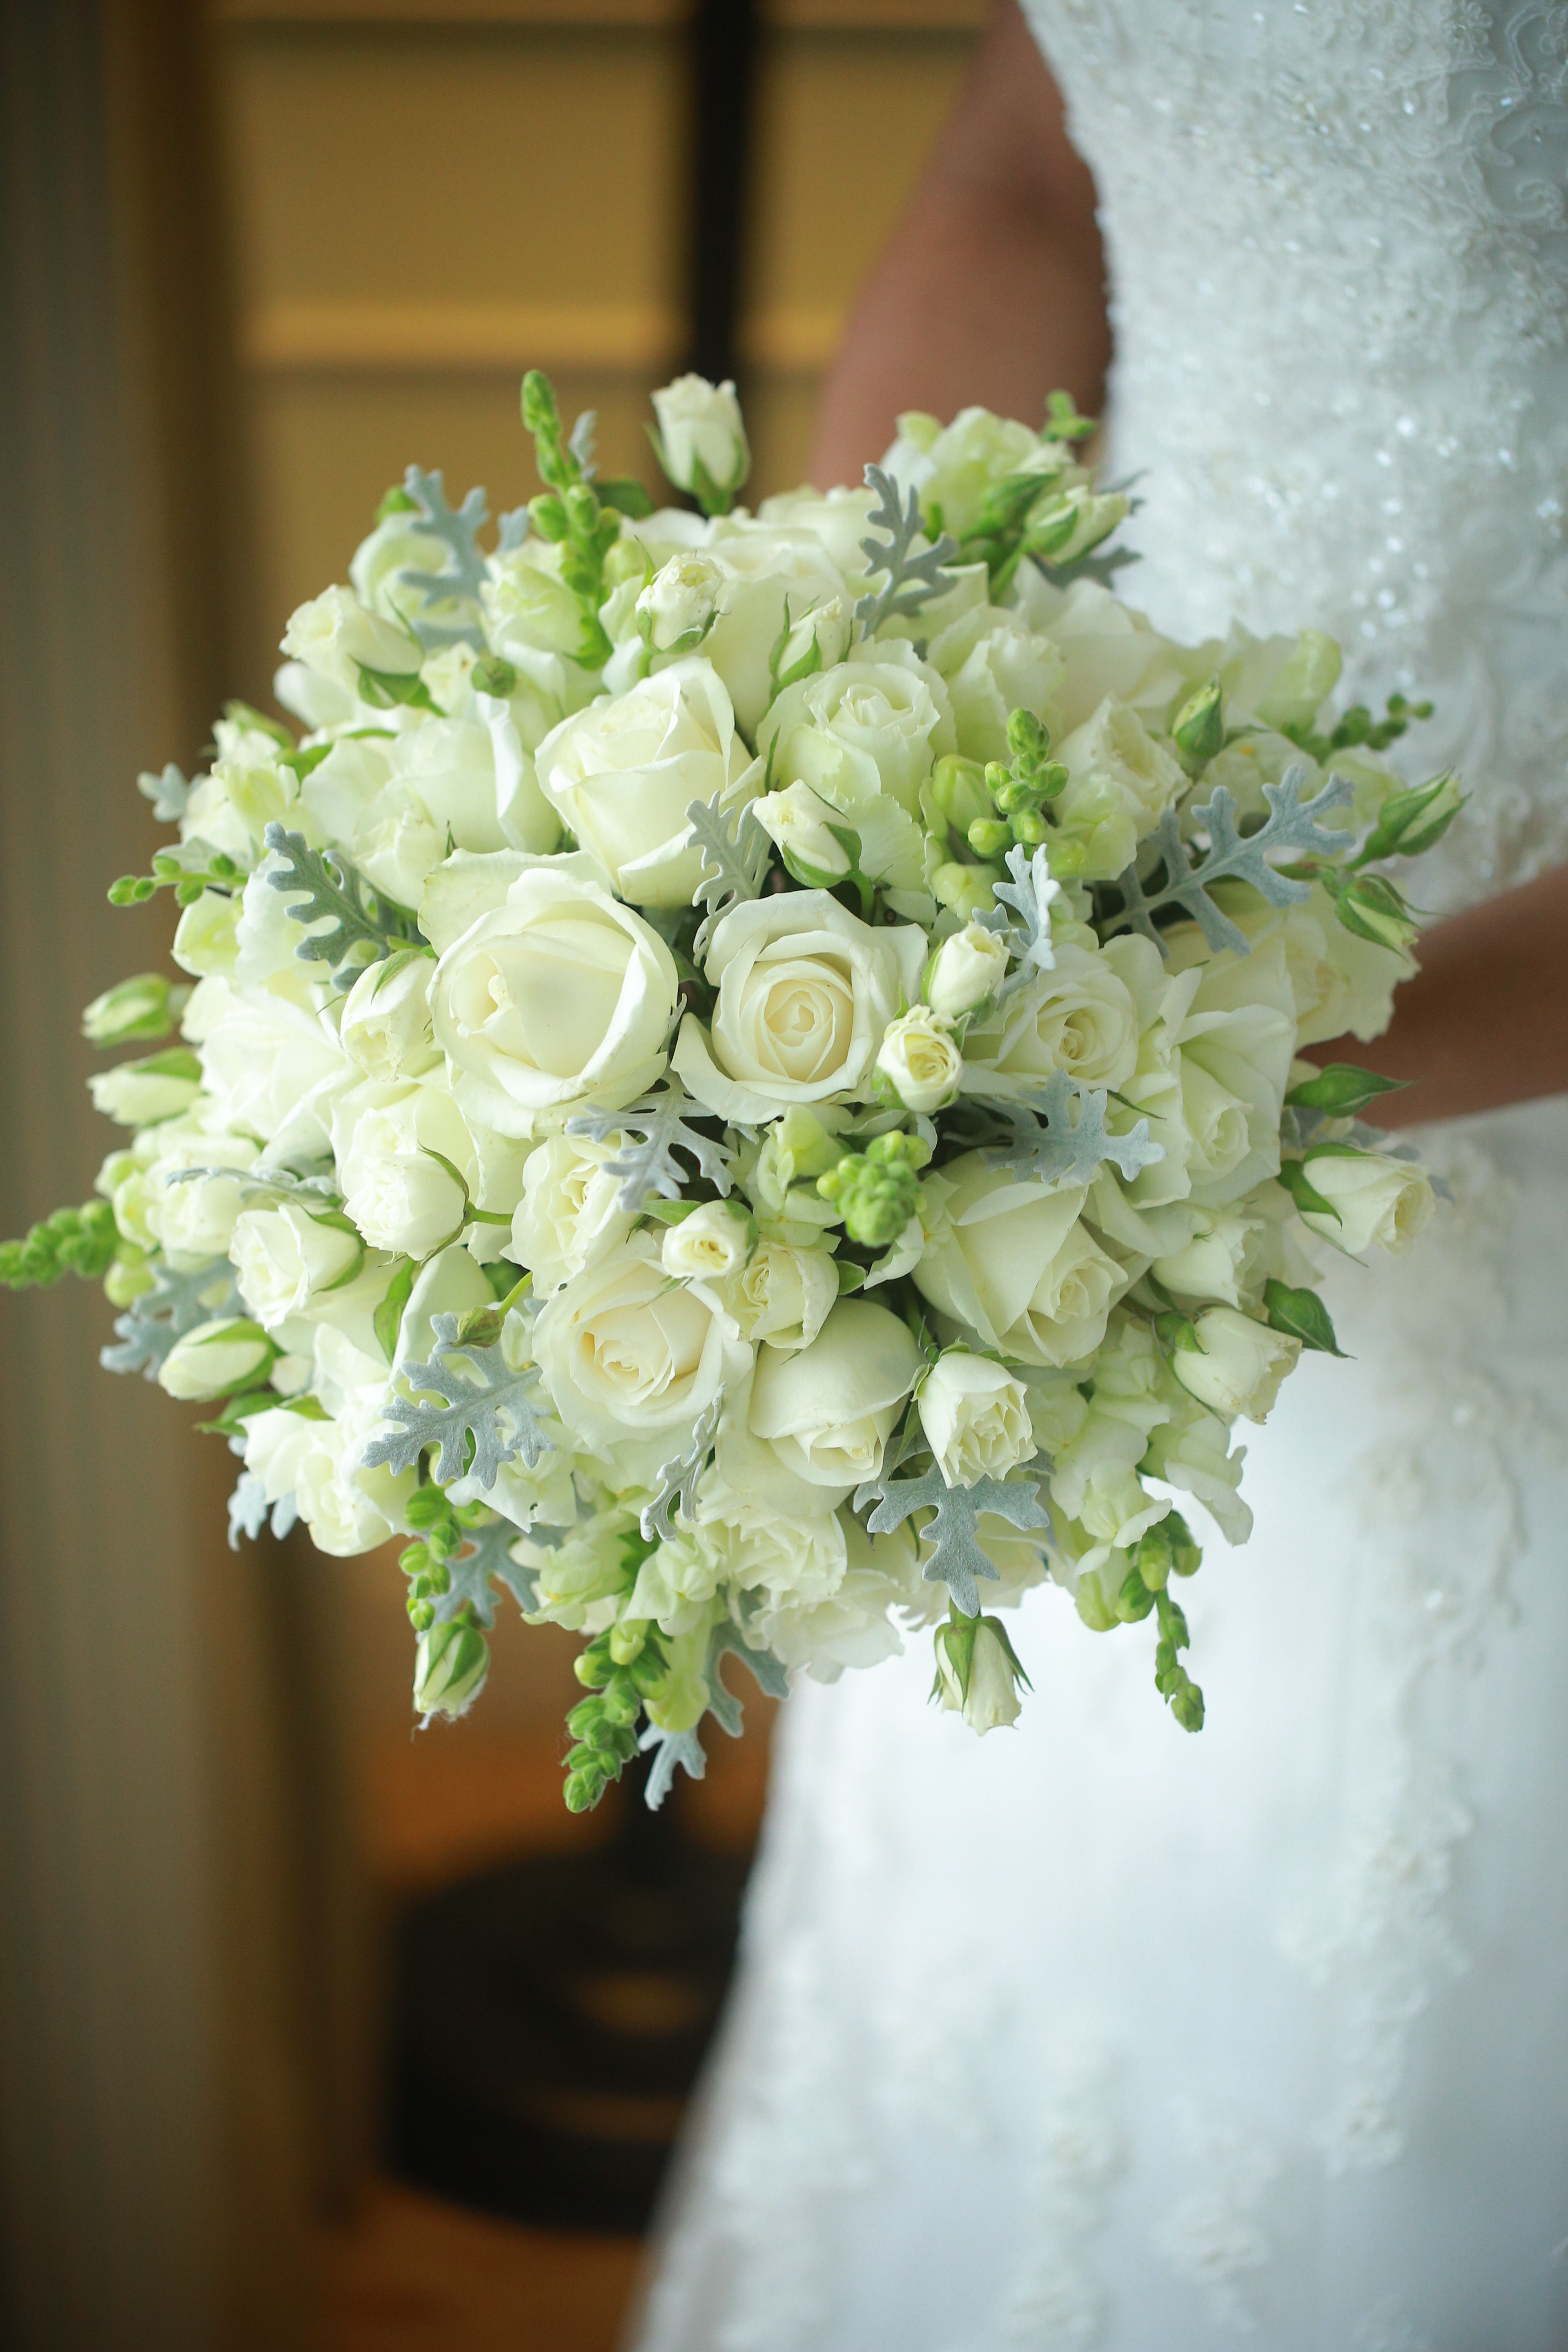 Bridal bouquet #whitebridalbouquets